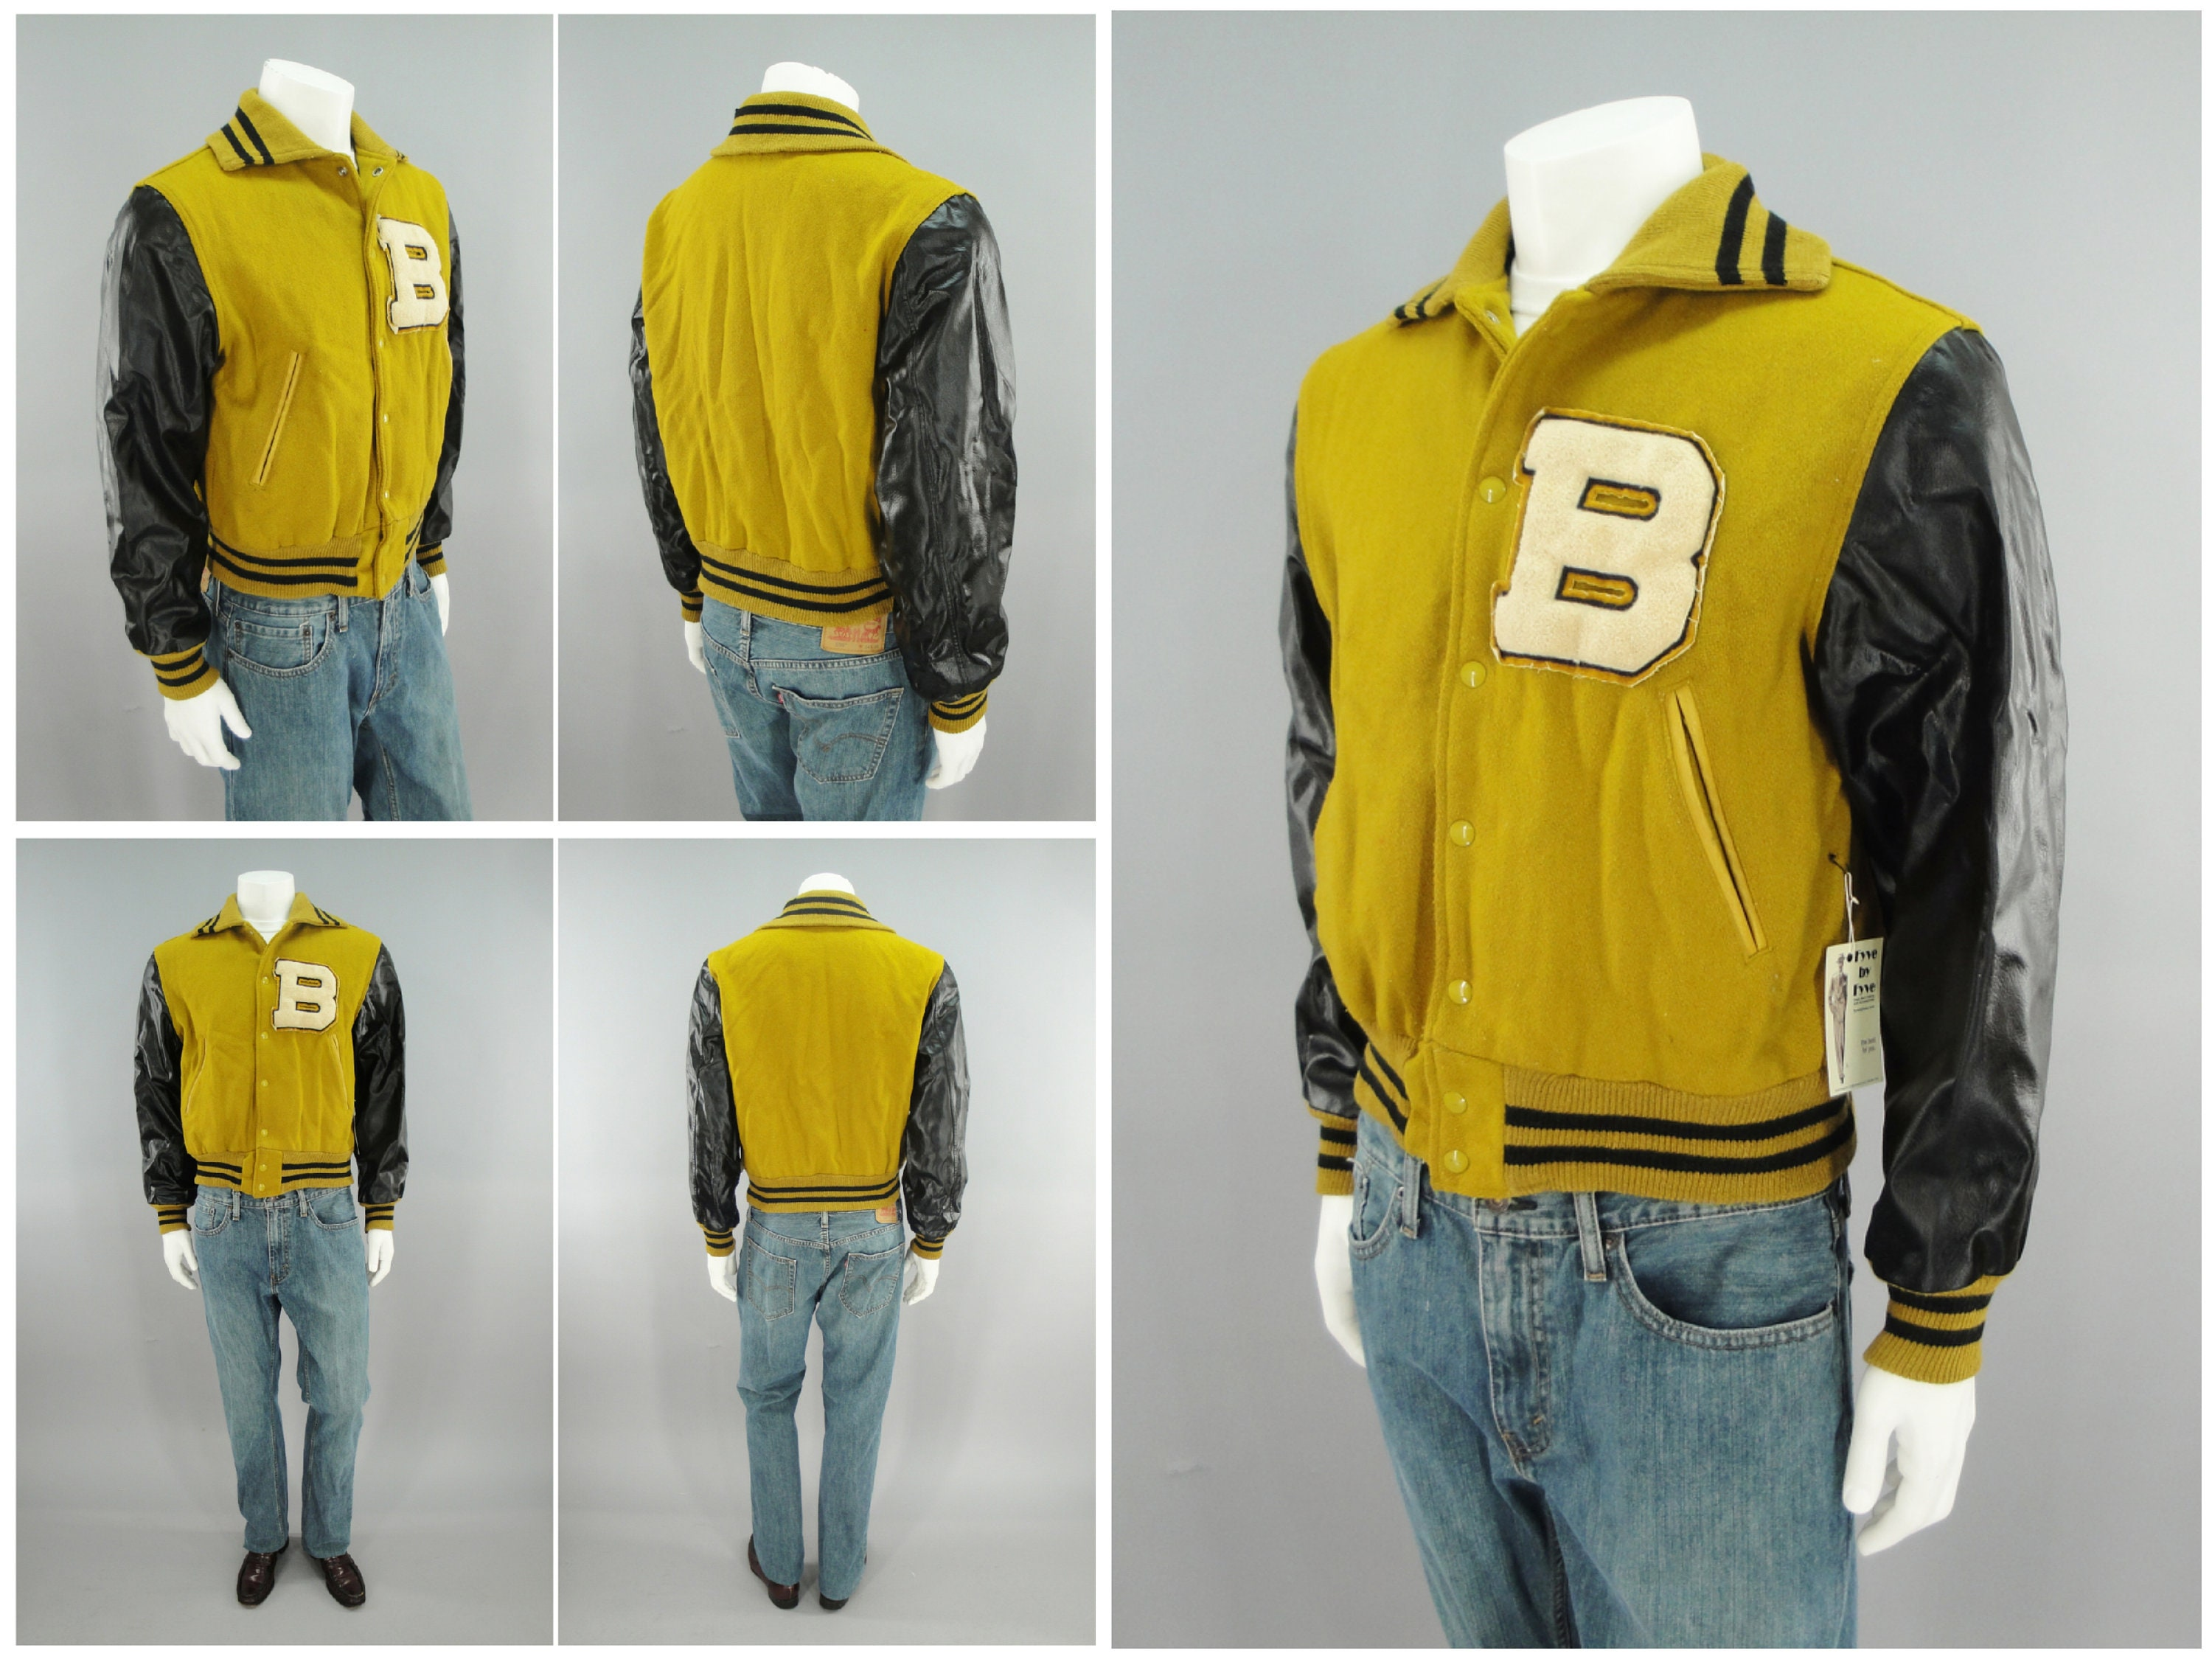 1950s Mens Hats | 50s Vintage Men's Hats 1950S Vintage Naugalite Varsity Letterman Jacket With Chenille Letter B, Yellow  Black, Taylored By Hatchers Of Beverly, Mass, Size M 40 $0.00 AT vintagedancer.com